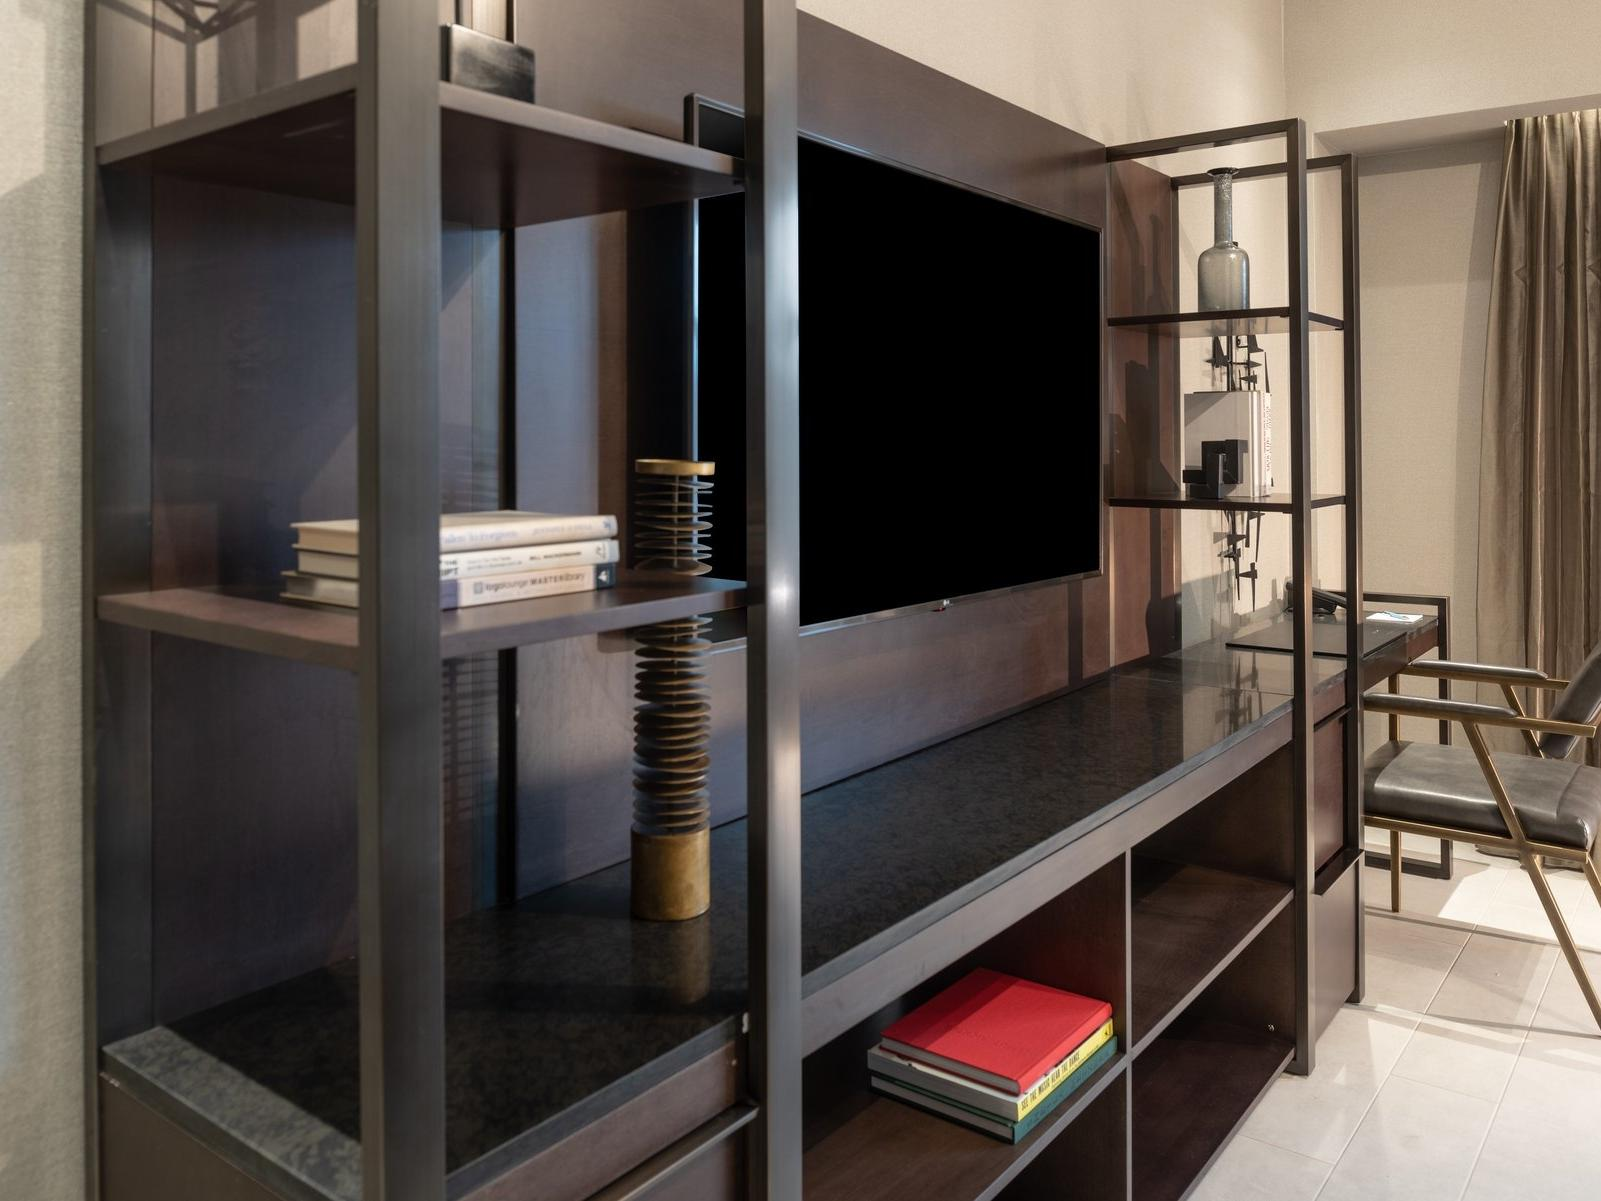 TV unit with books on shelves